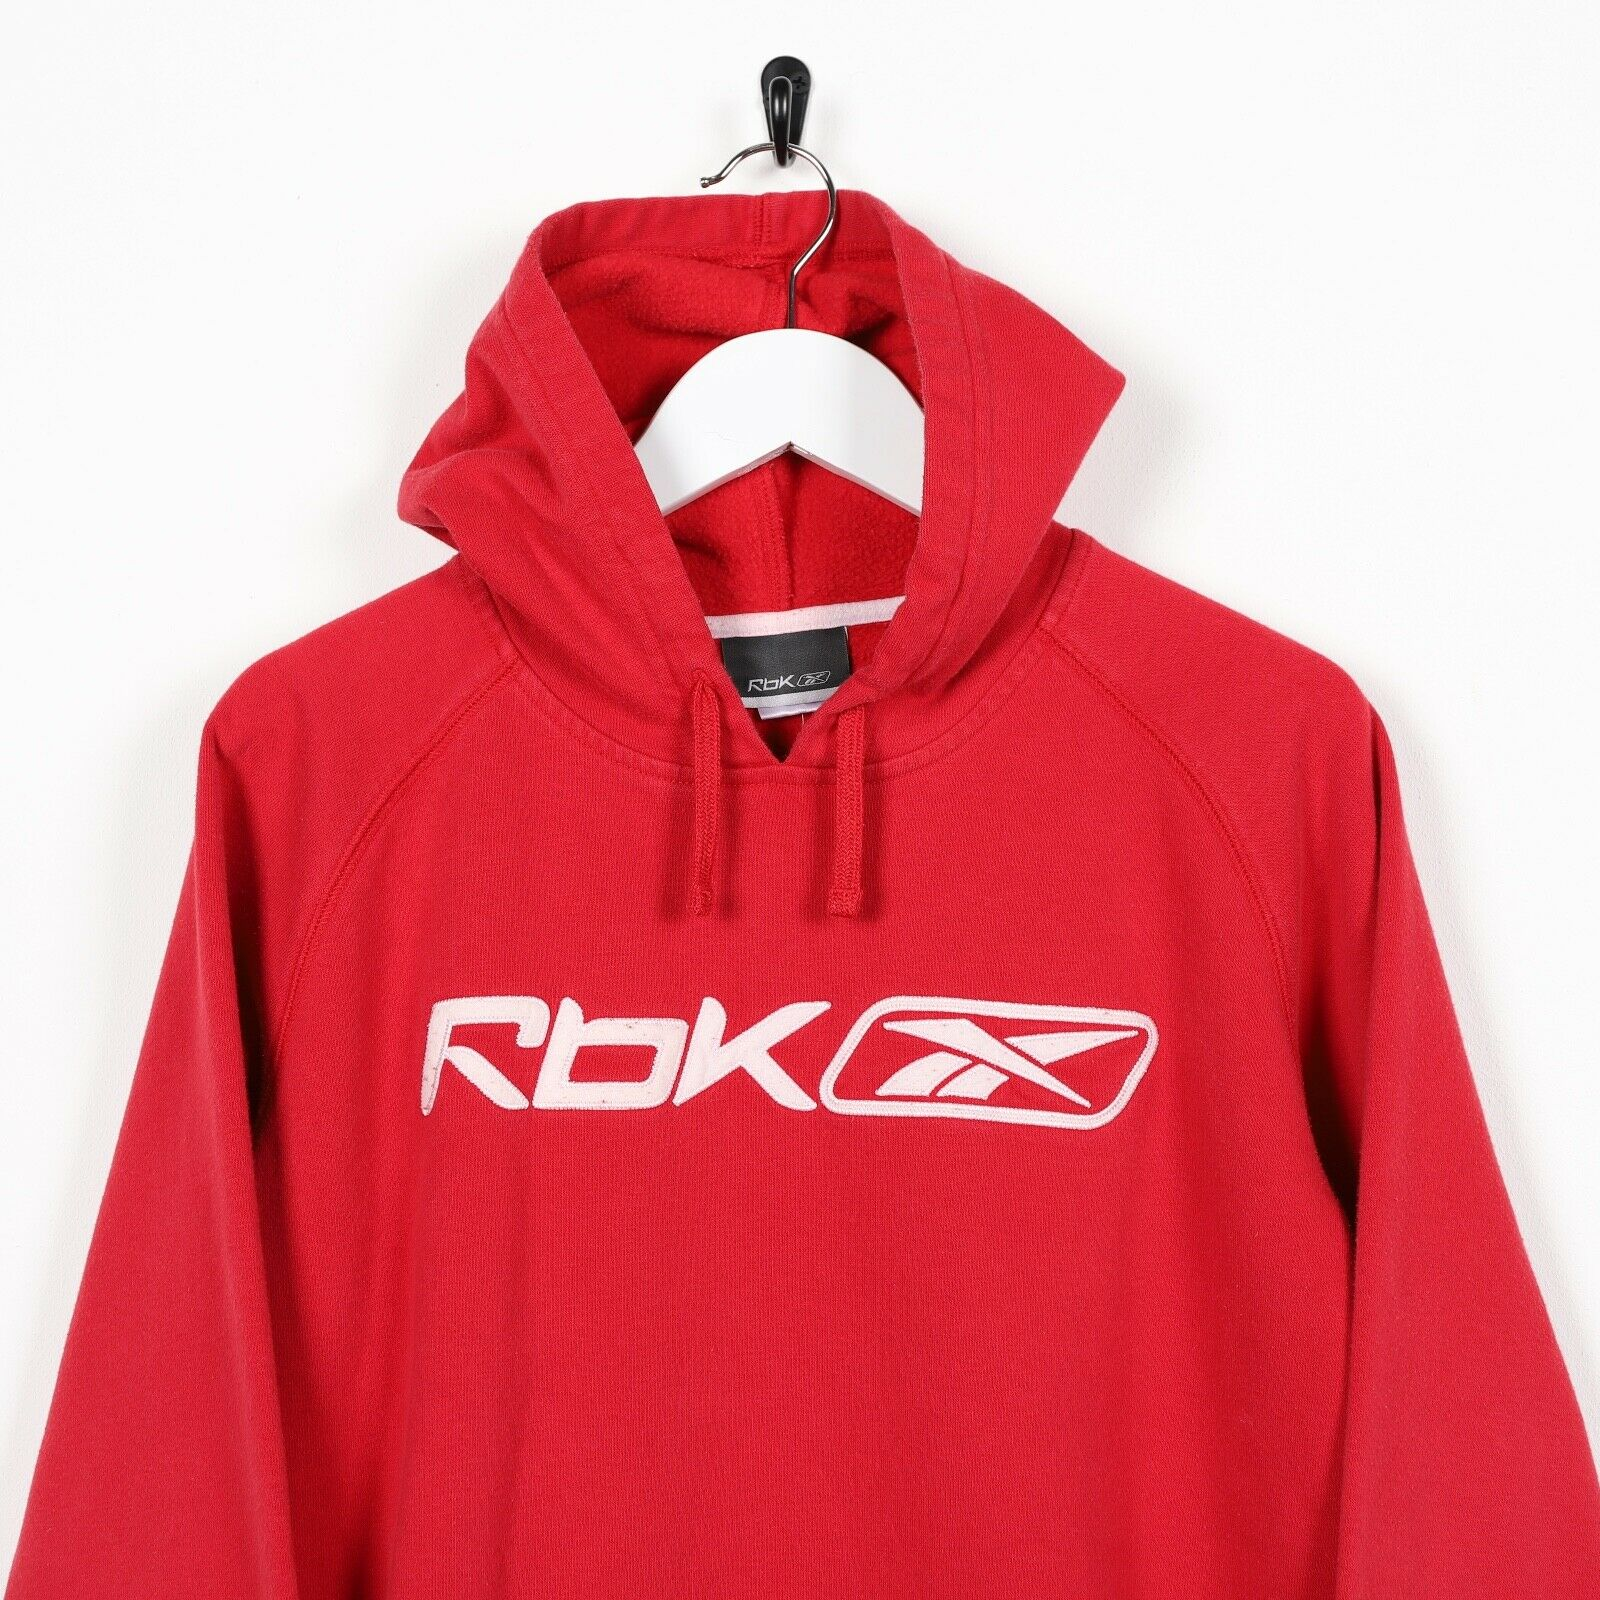 Vintage Women's REEBOK Central Spell Out Logo Hoodie Sweatshirt Red Medium M